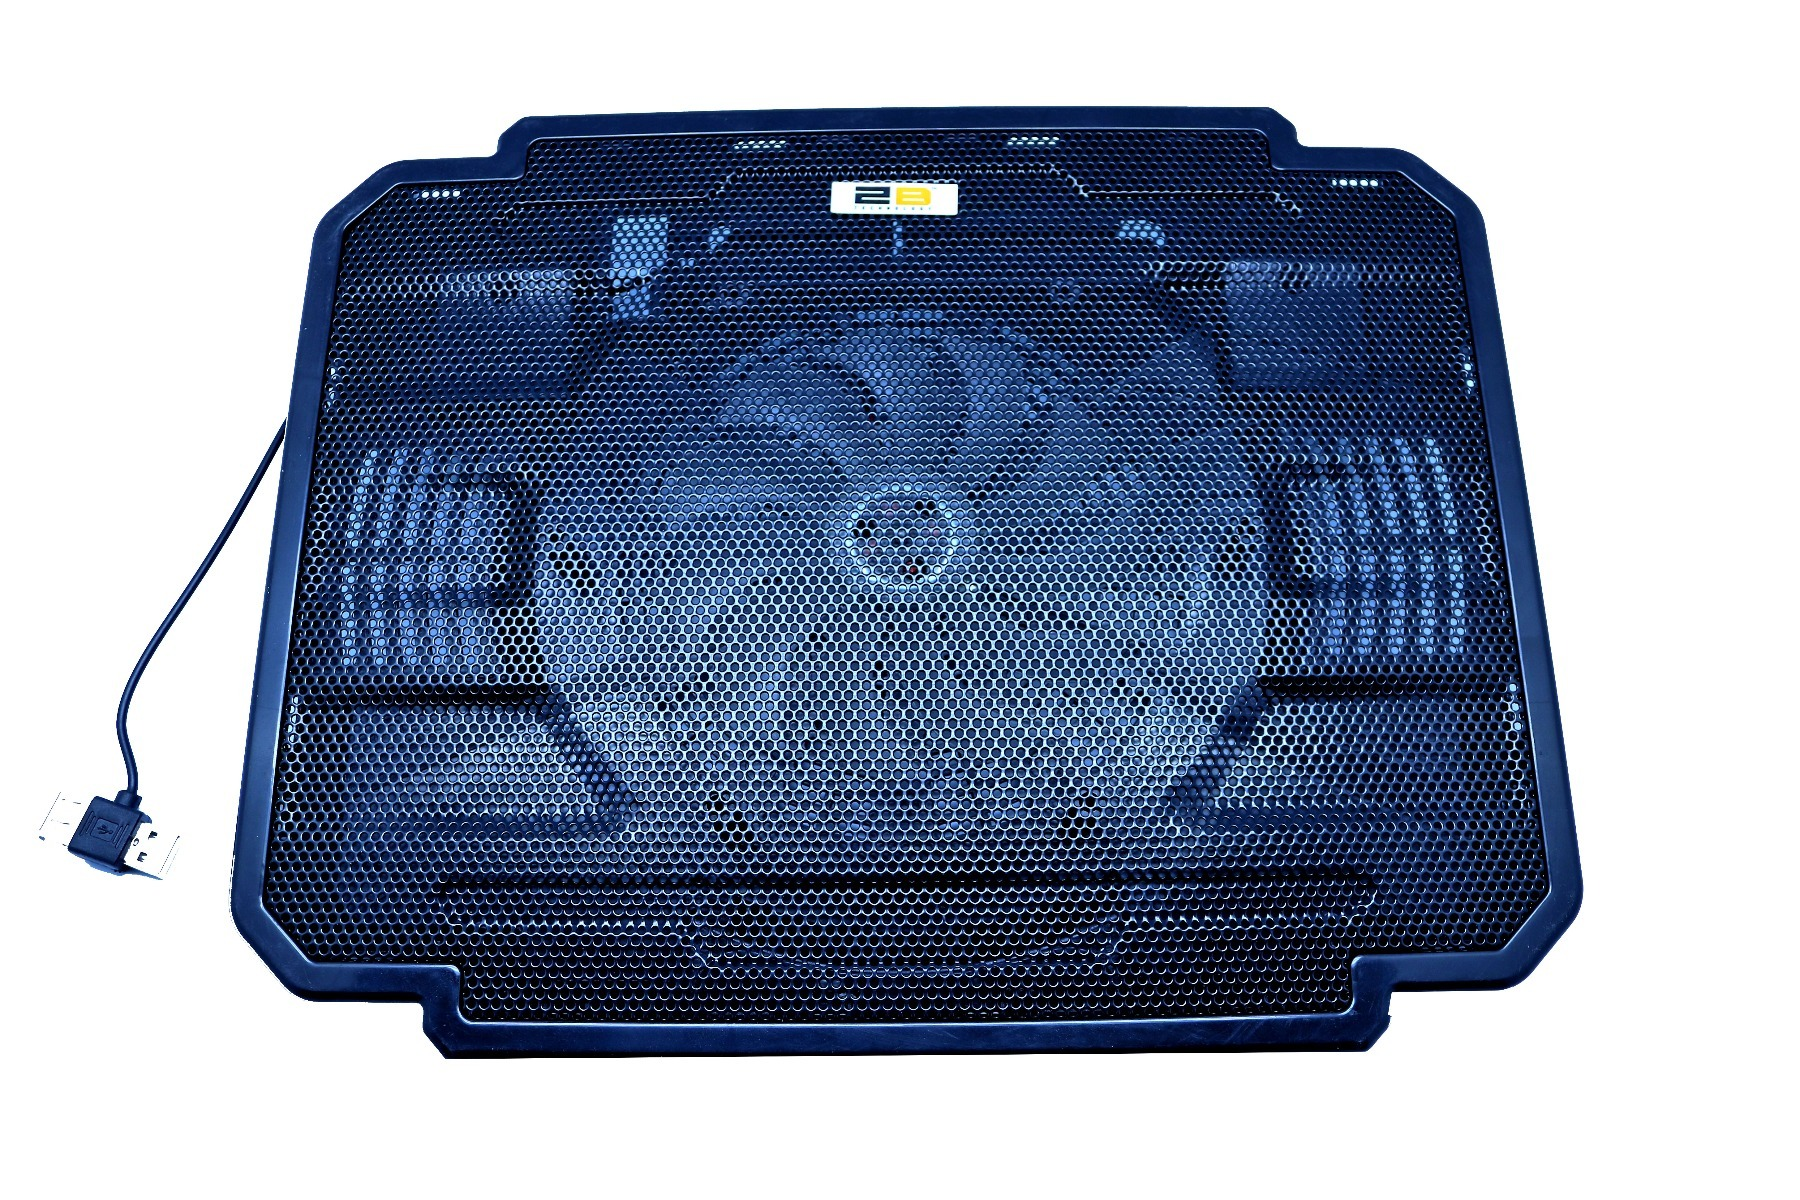 2B (LF003) - Laptop fan, Multicolor design ,Light Led ,shockproof